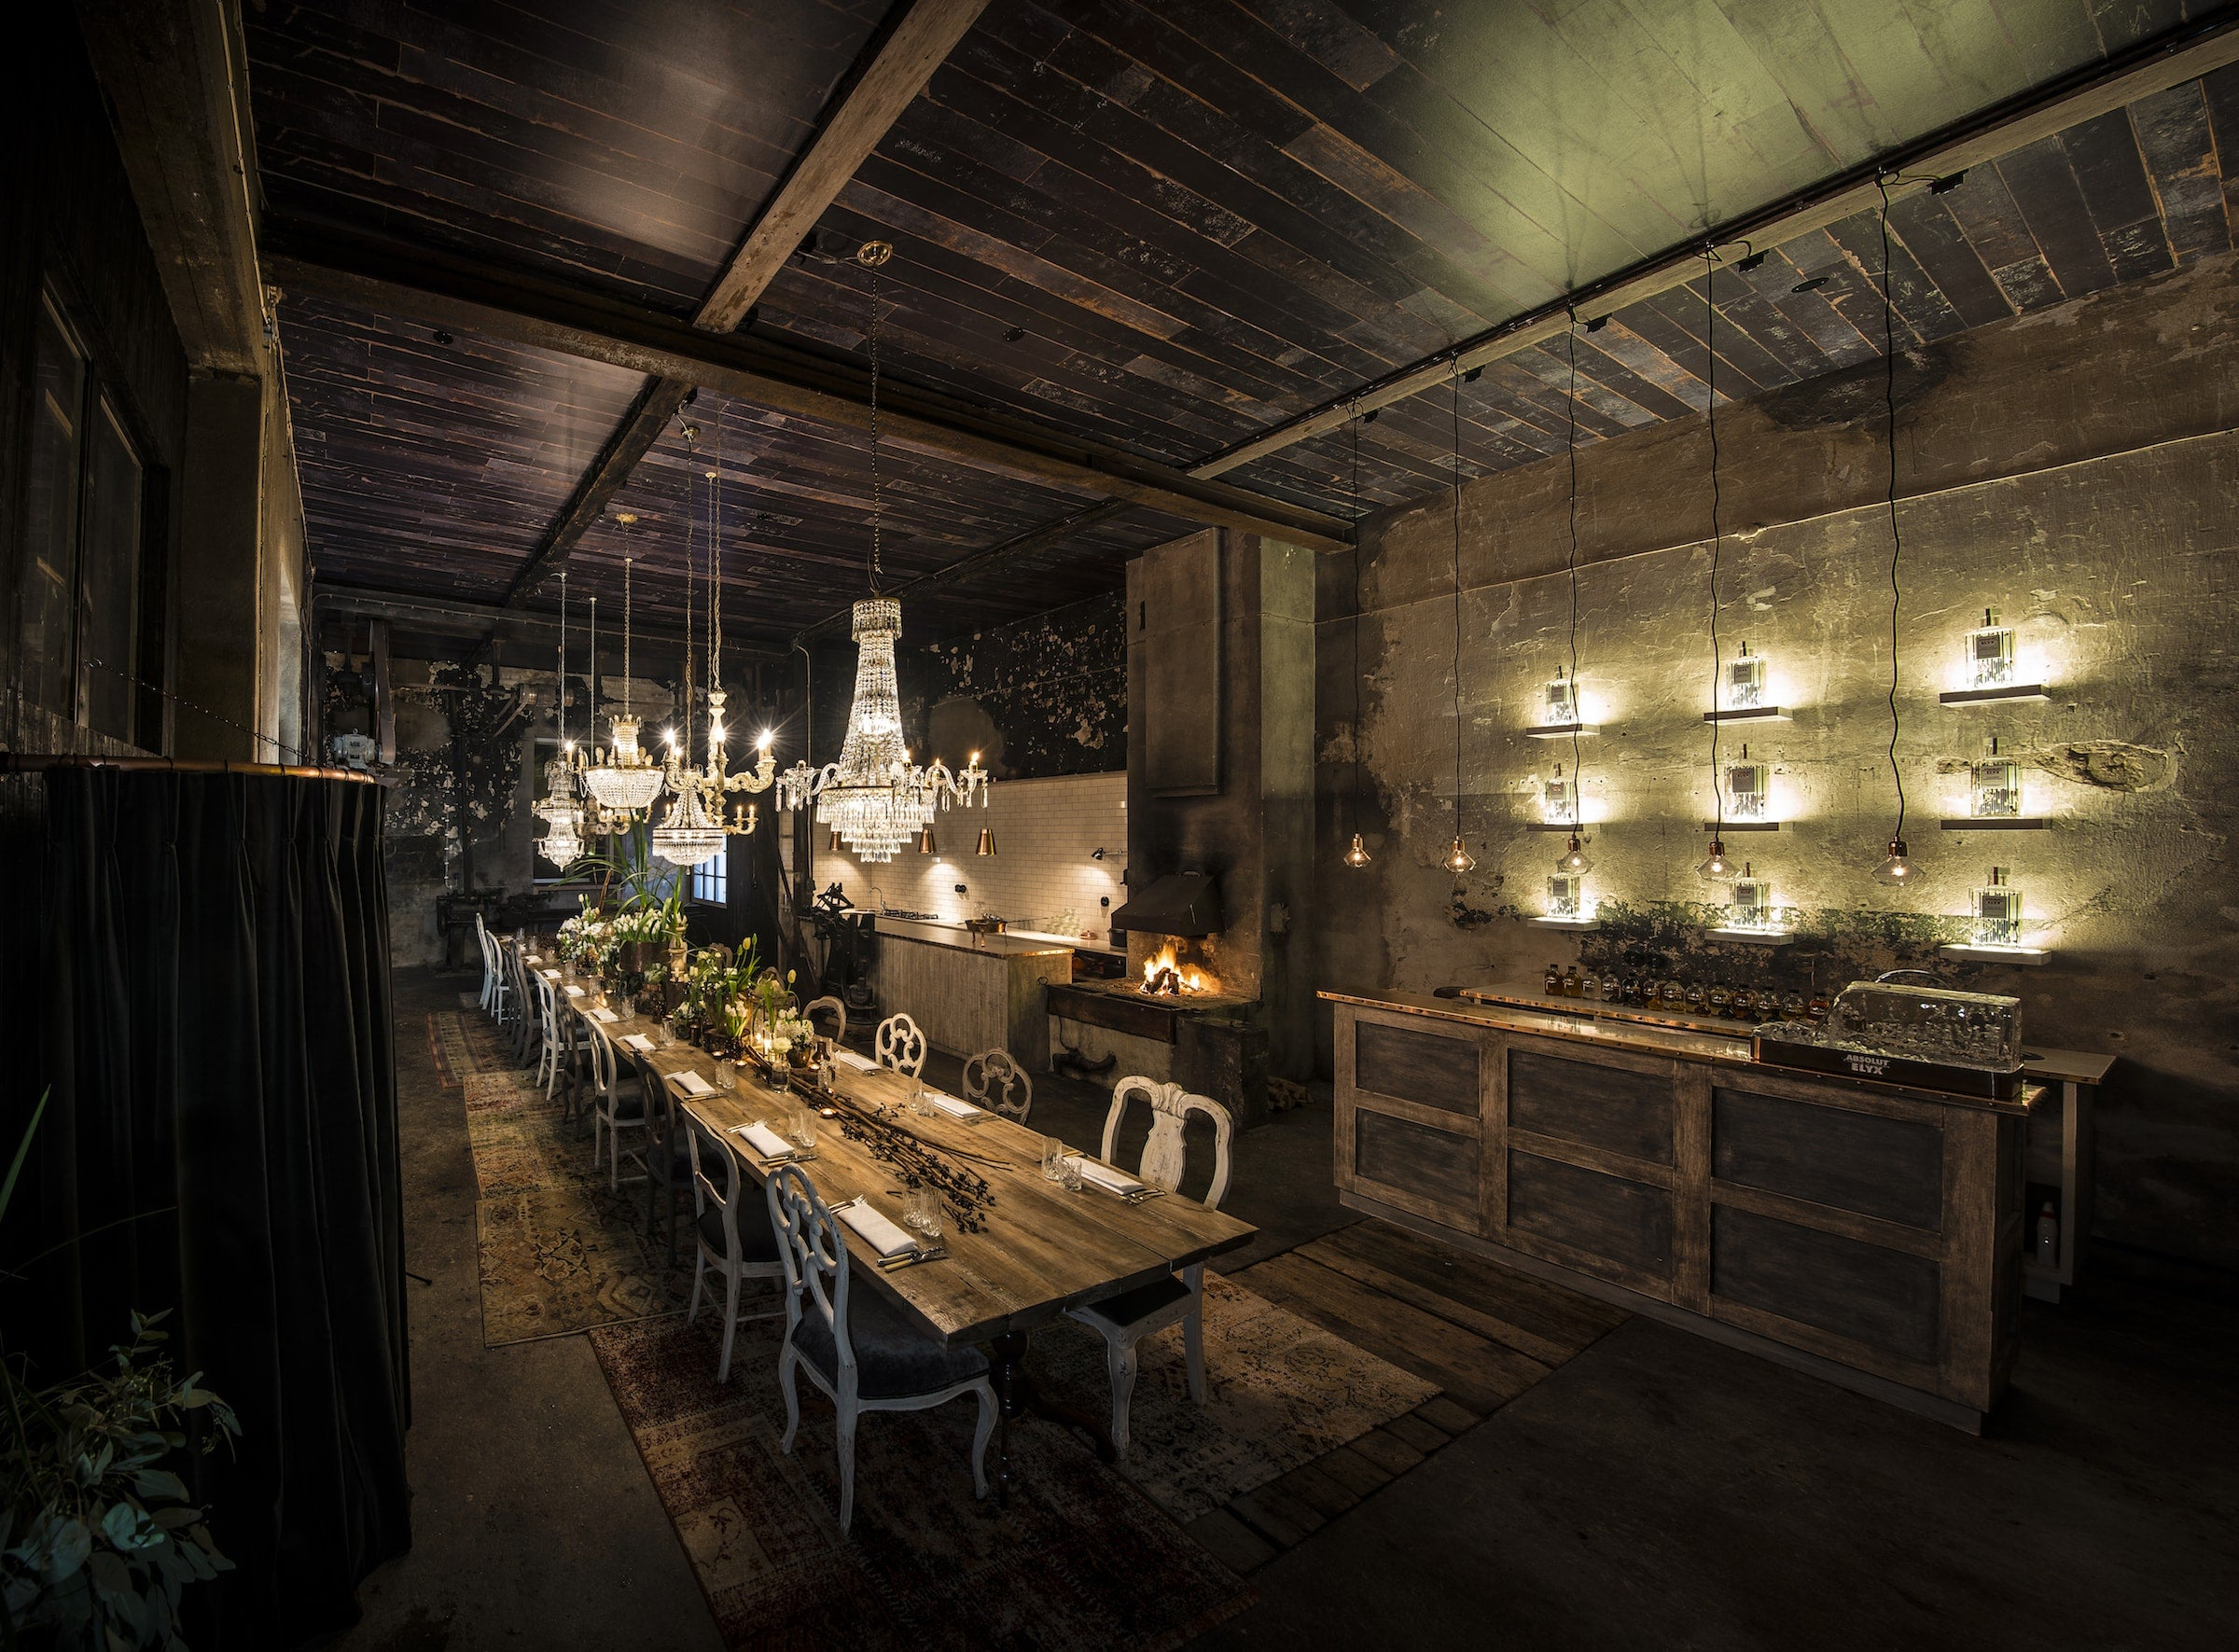 Full view of the Blacksmith dinner at the Elyx Experience